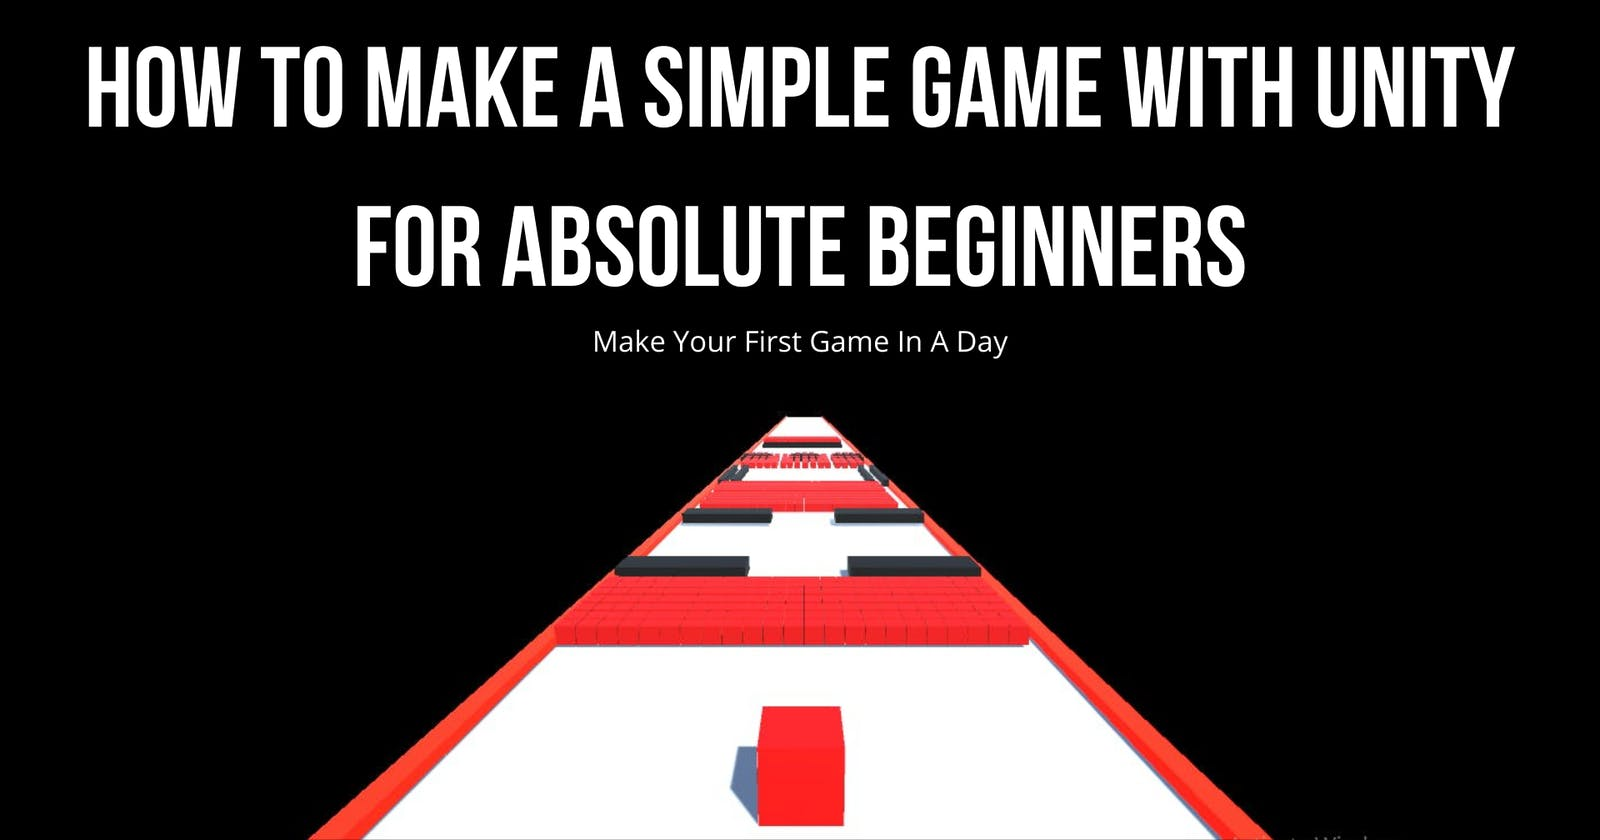 How To Make A Simple Game With Unity : For Absolute beginners